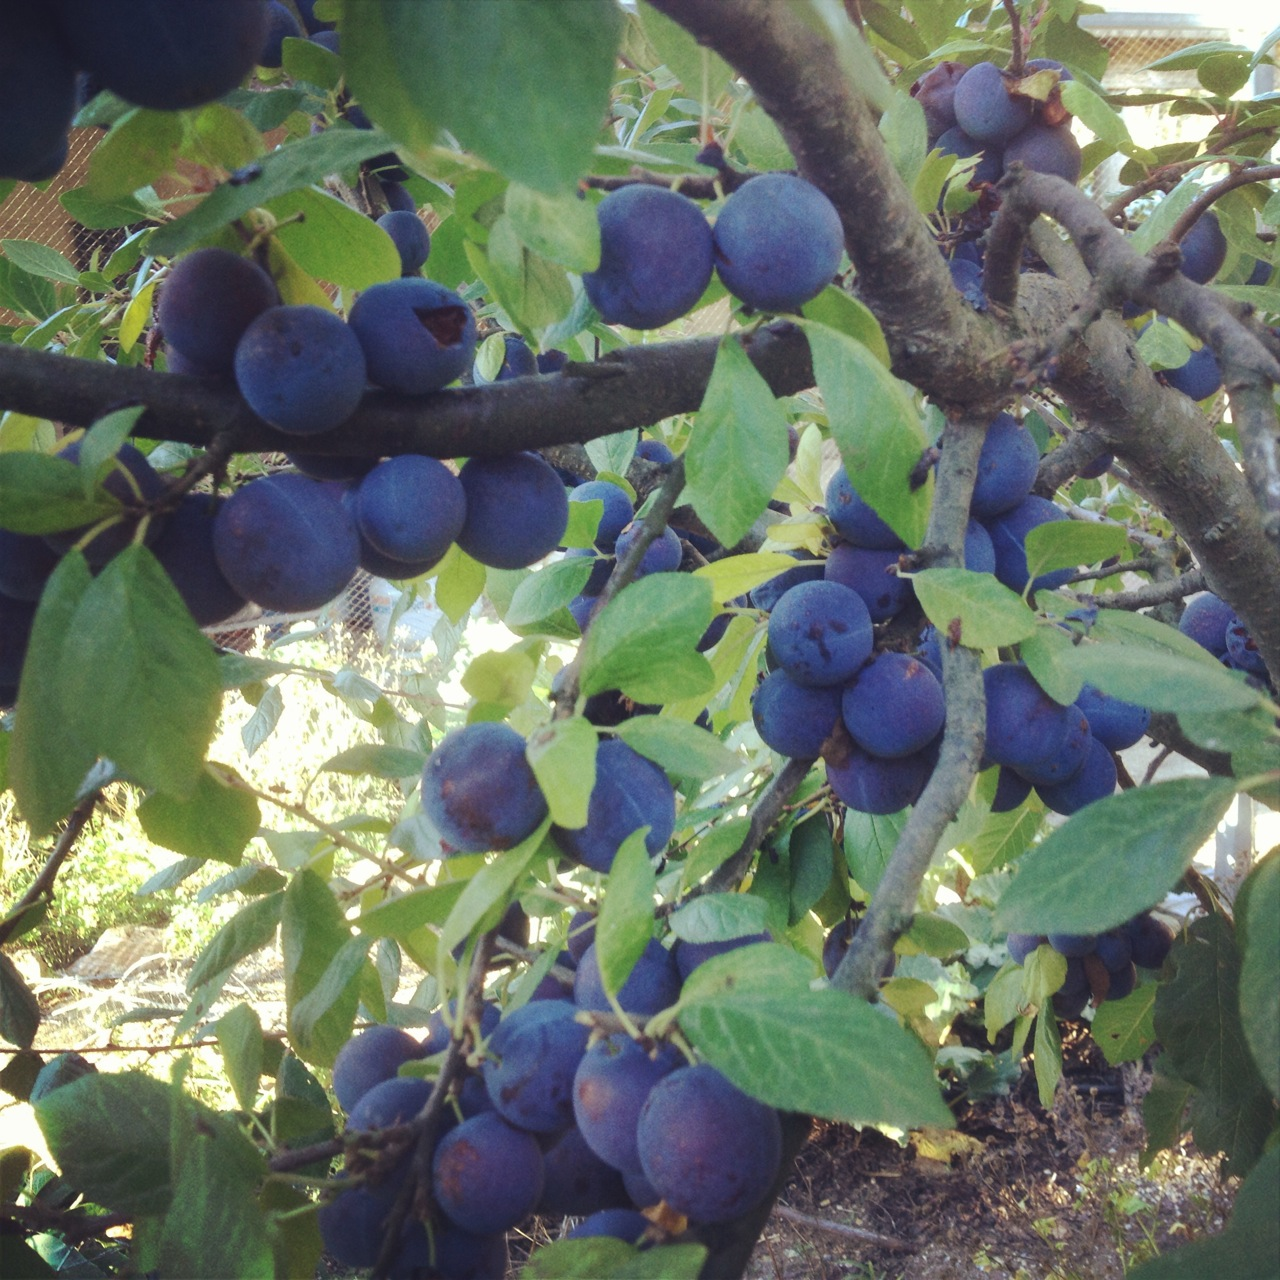 Damsons on the tree at Allsun Farm